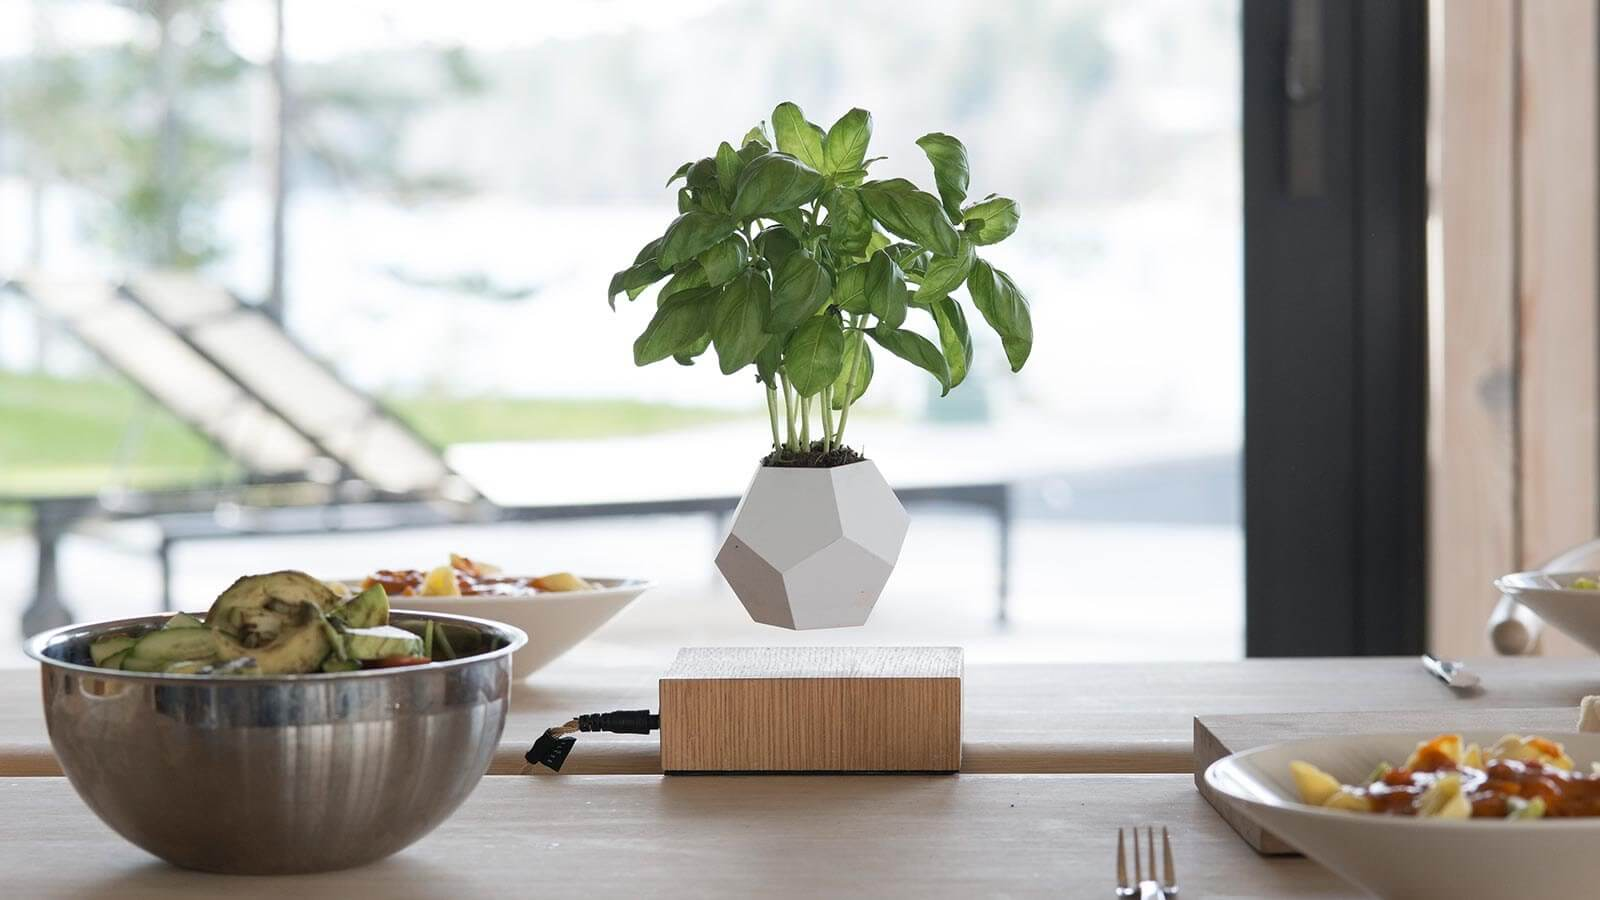 Top 5 mind blowing new levitating floating gadgets for Levitating plant